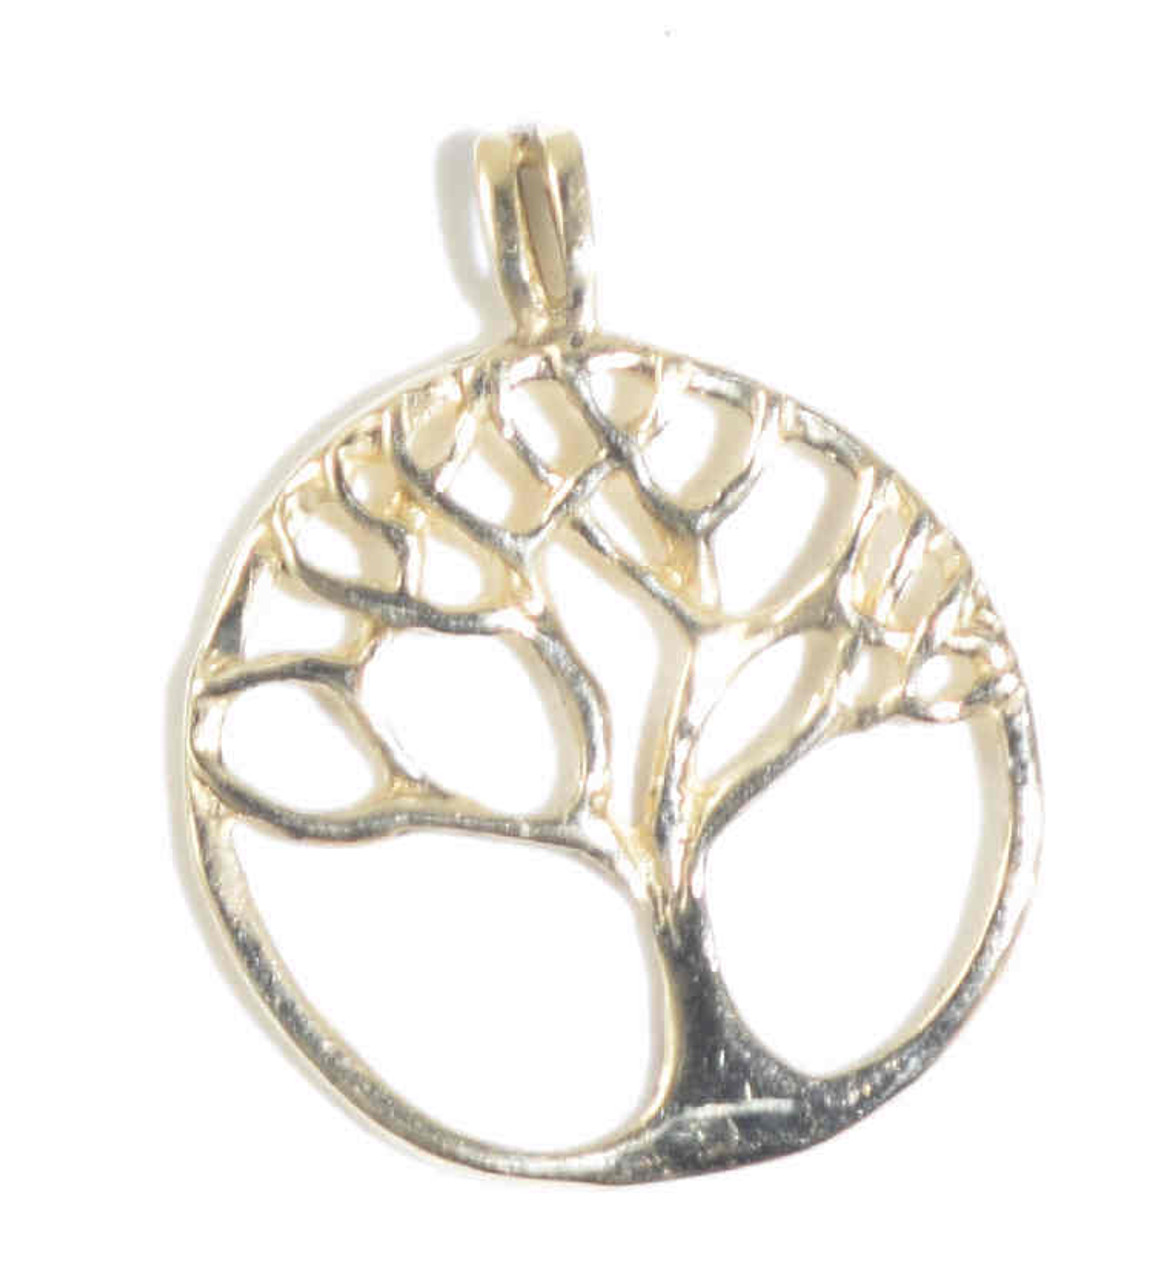 Gold tree of life pendant the gold tree of life pendant is hand crafted in portland maine the pendant aloadofball Image collections